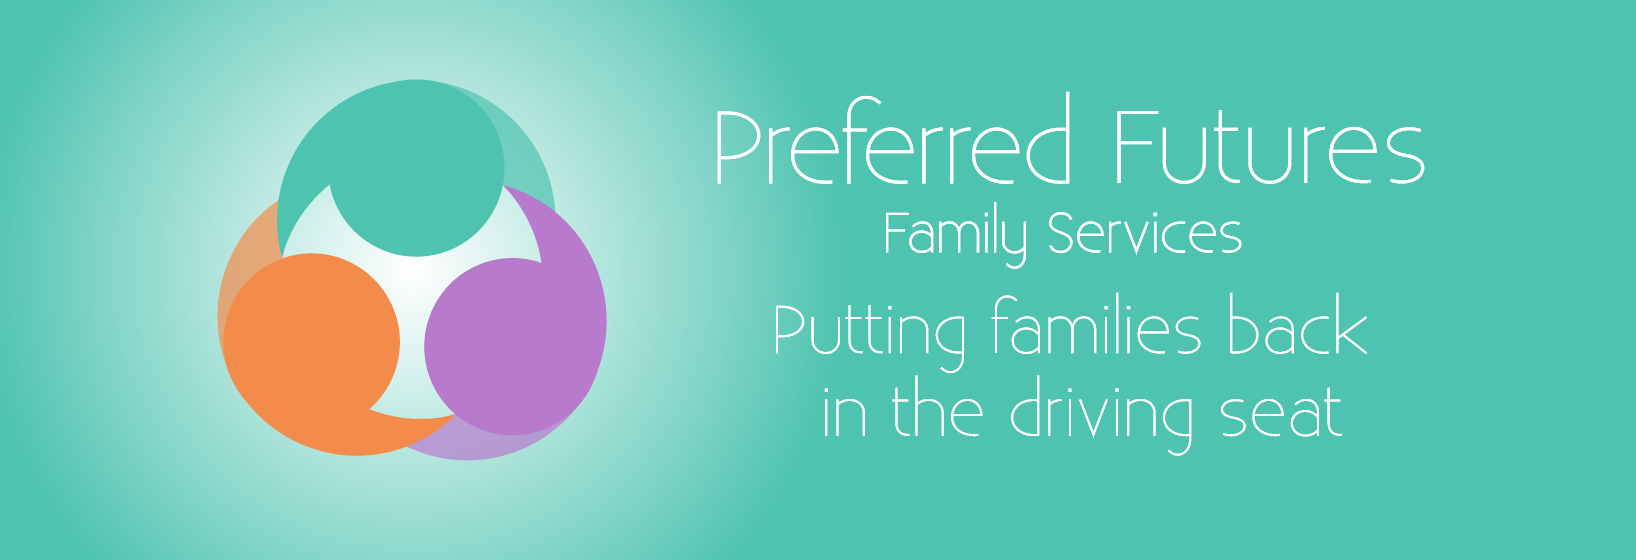 Preferred Futures Family Services